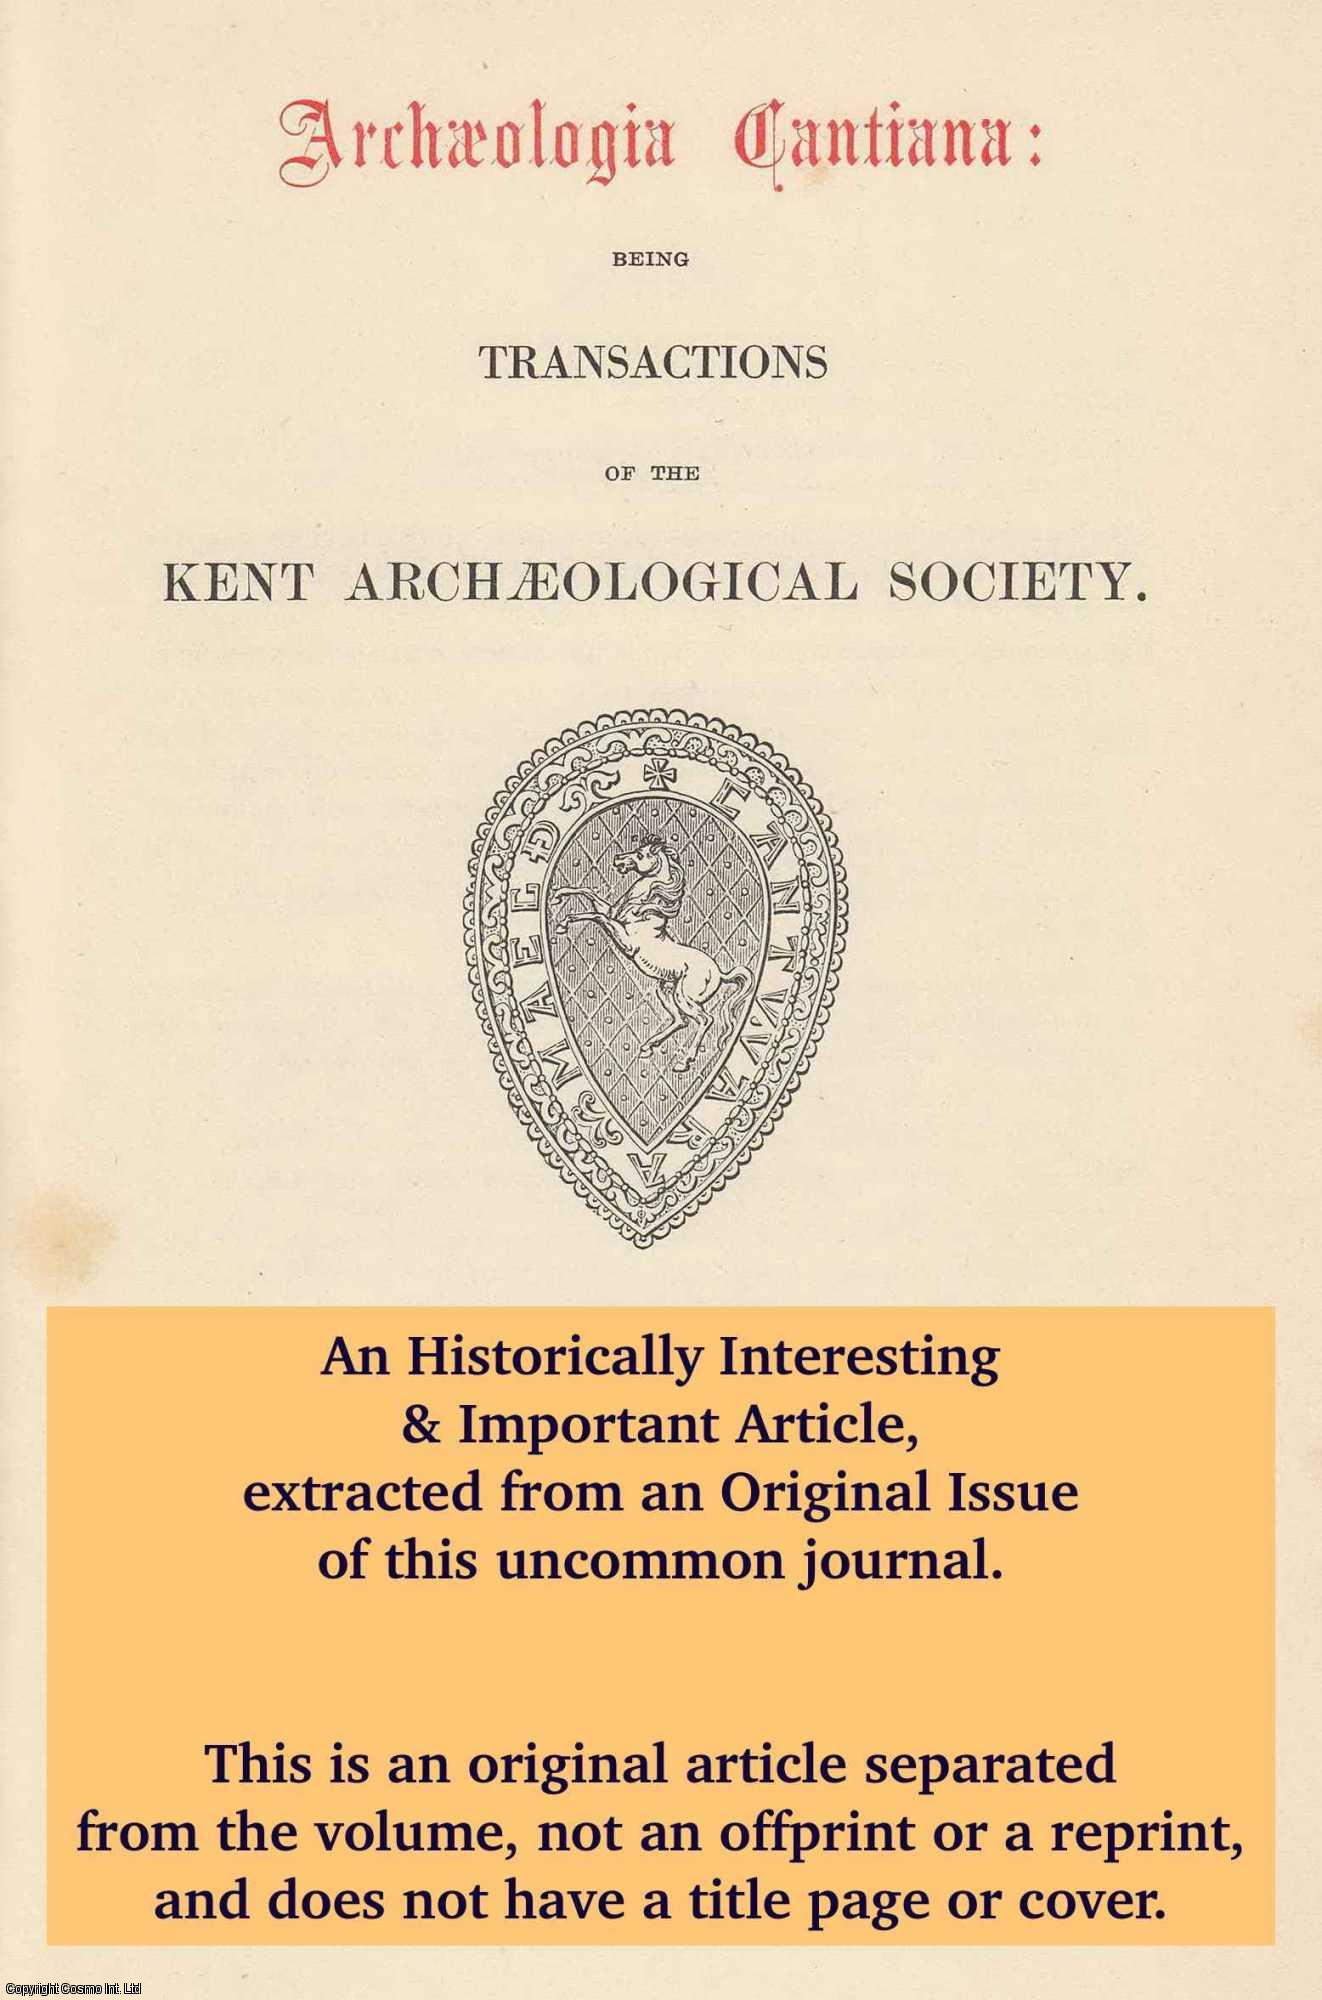 JESSUP, R. F. - A Saxon Charter of Higham. An original article from The Archaeologia Cantiana: Being Transactions of The Kent Archaeological Society, 1942.